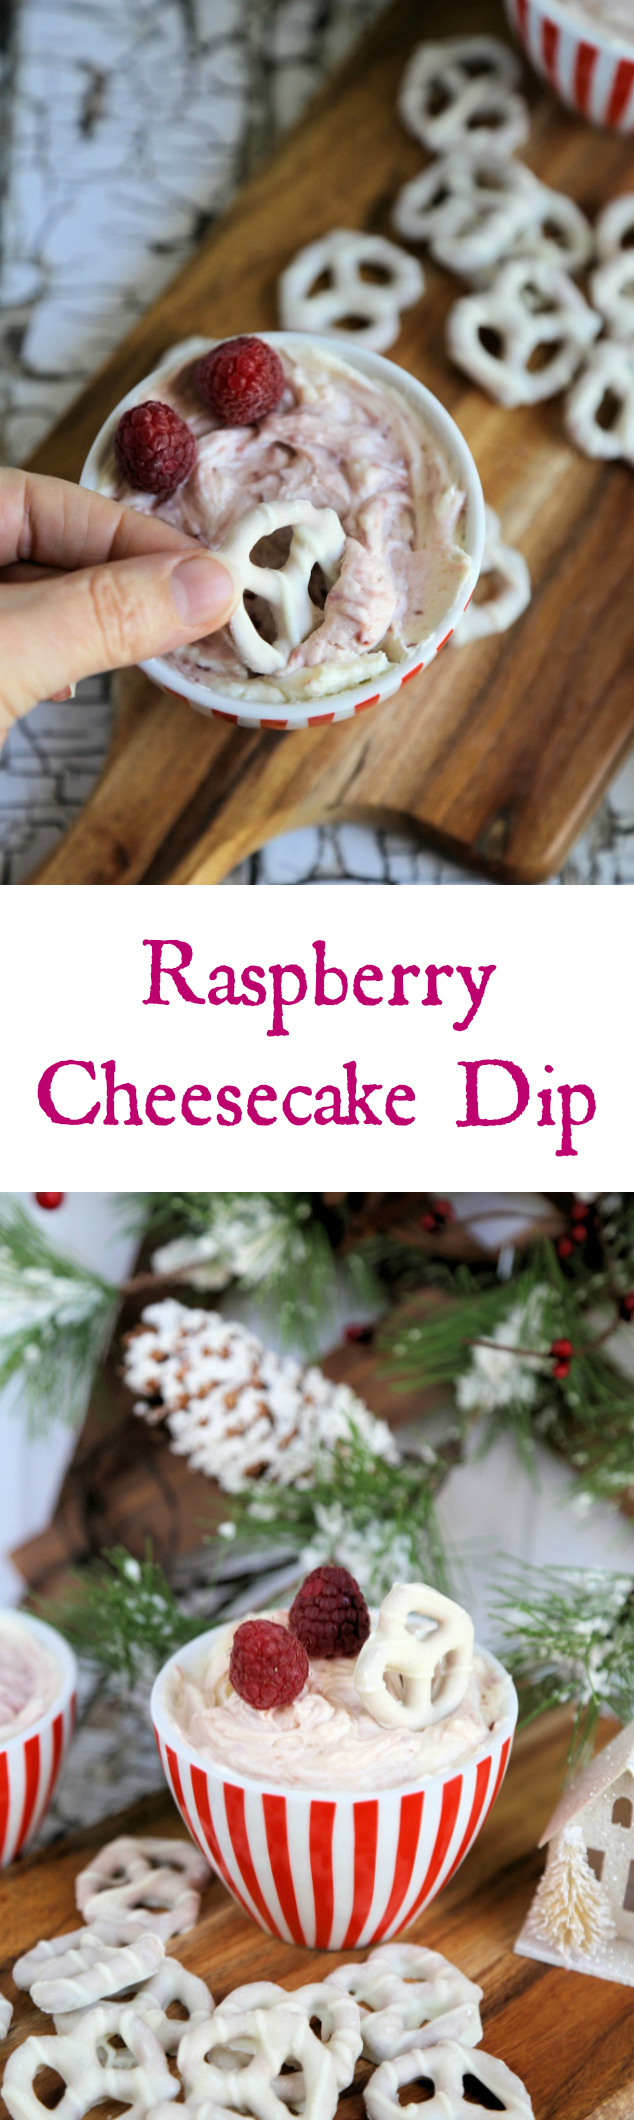 Raspberry Cheesecake Dip Recipe